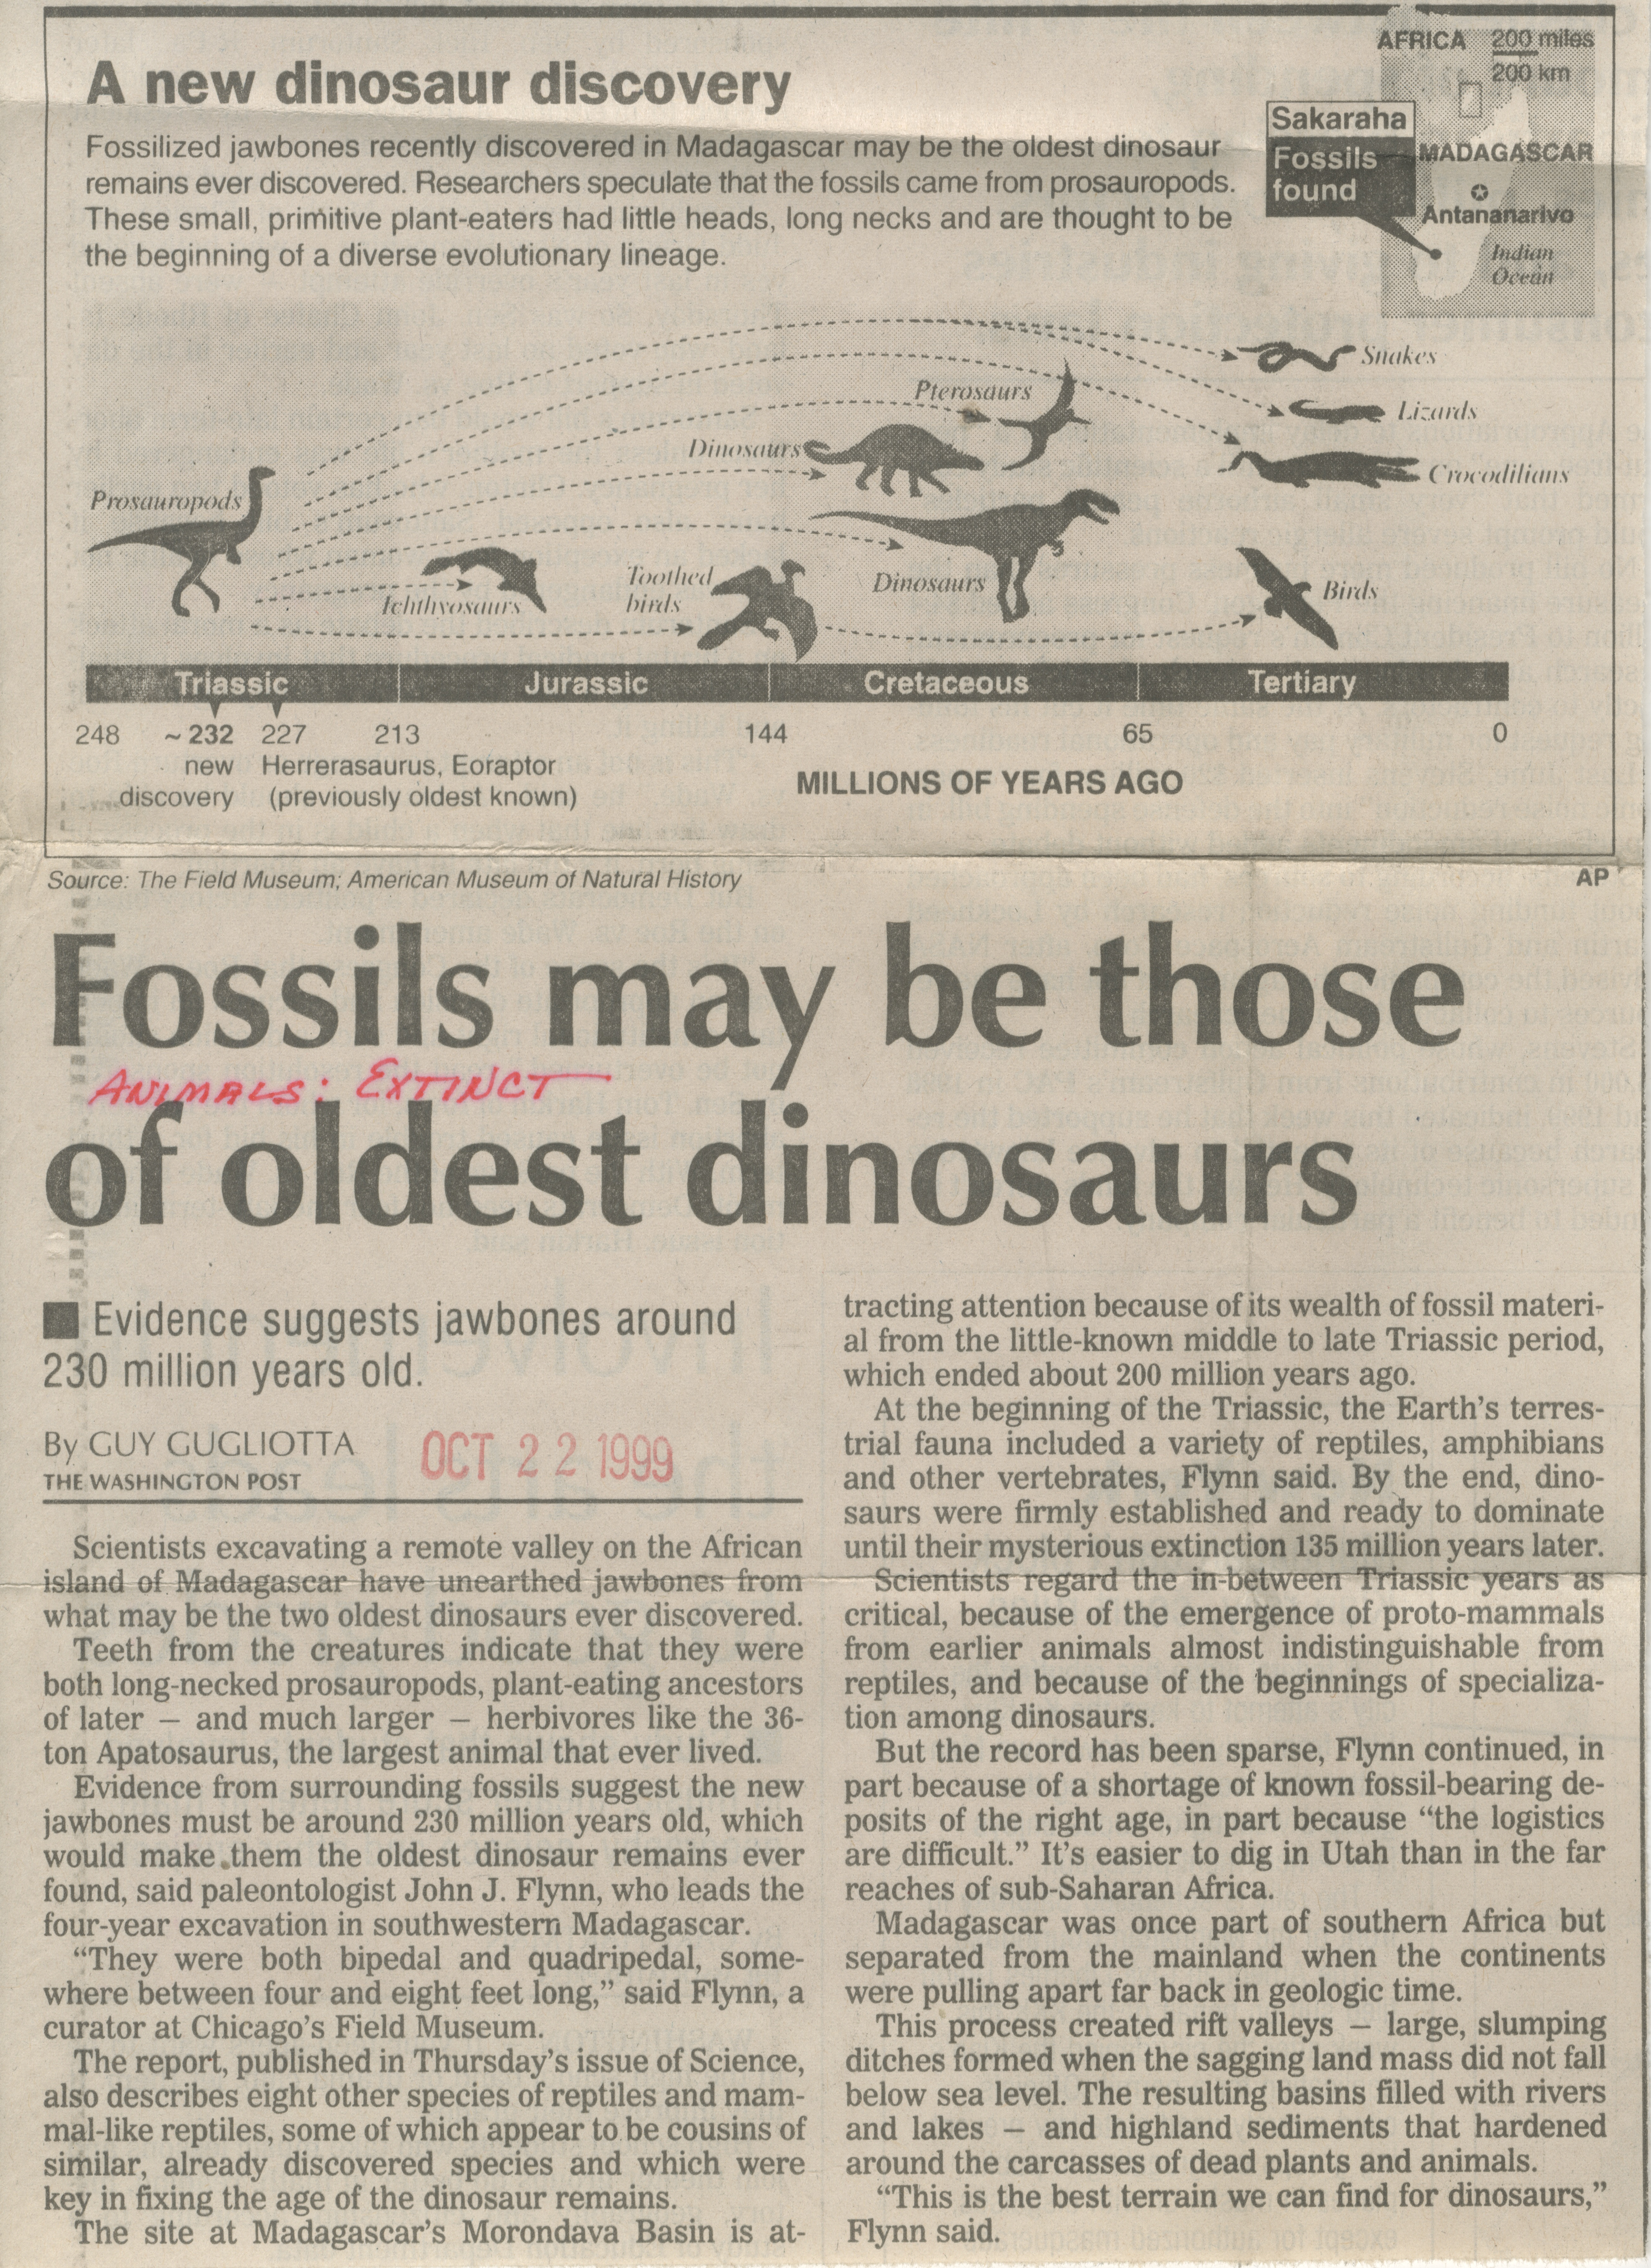 Fossils May Be Those Of Oldest Dinosaurs image